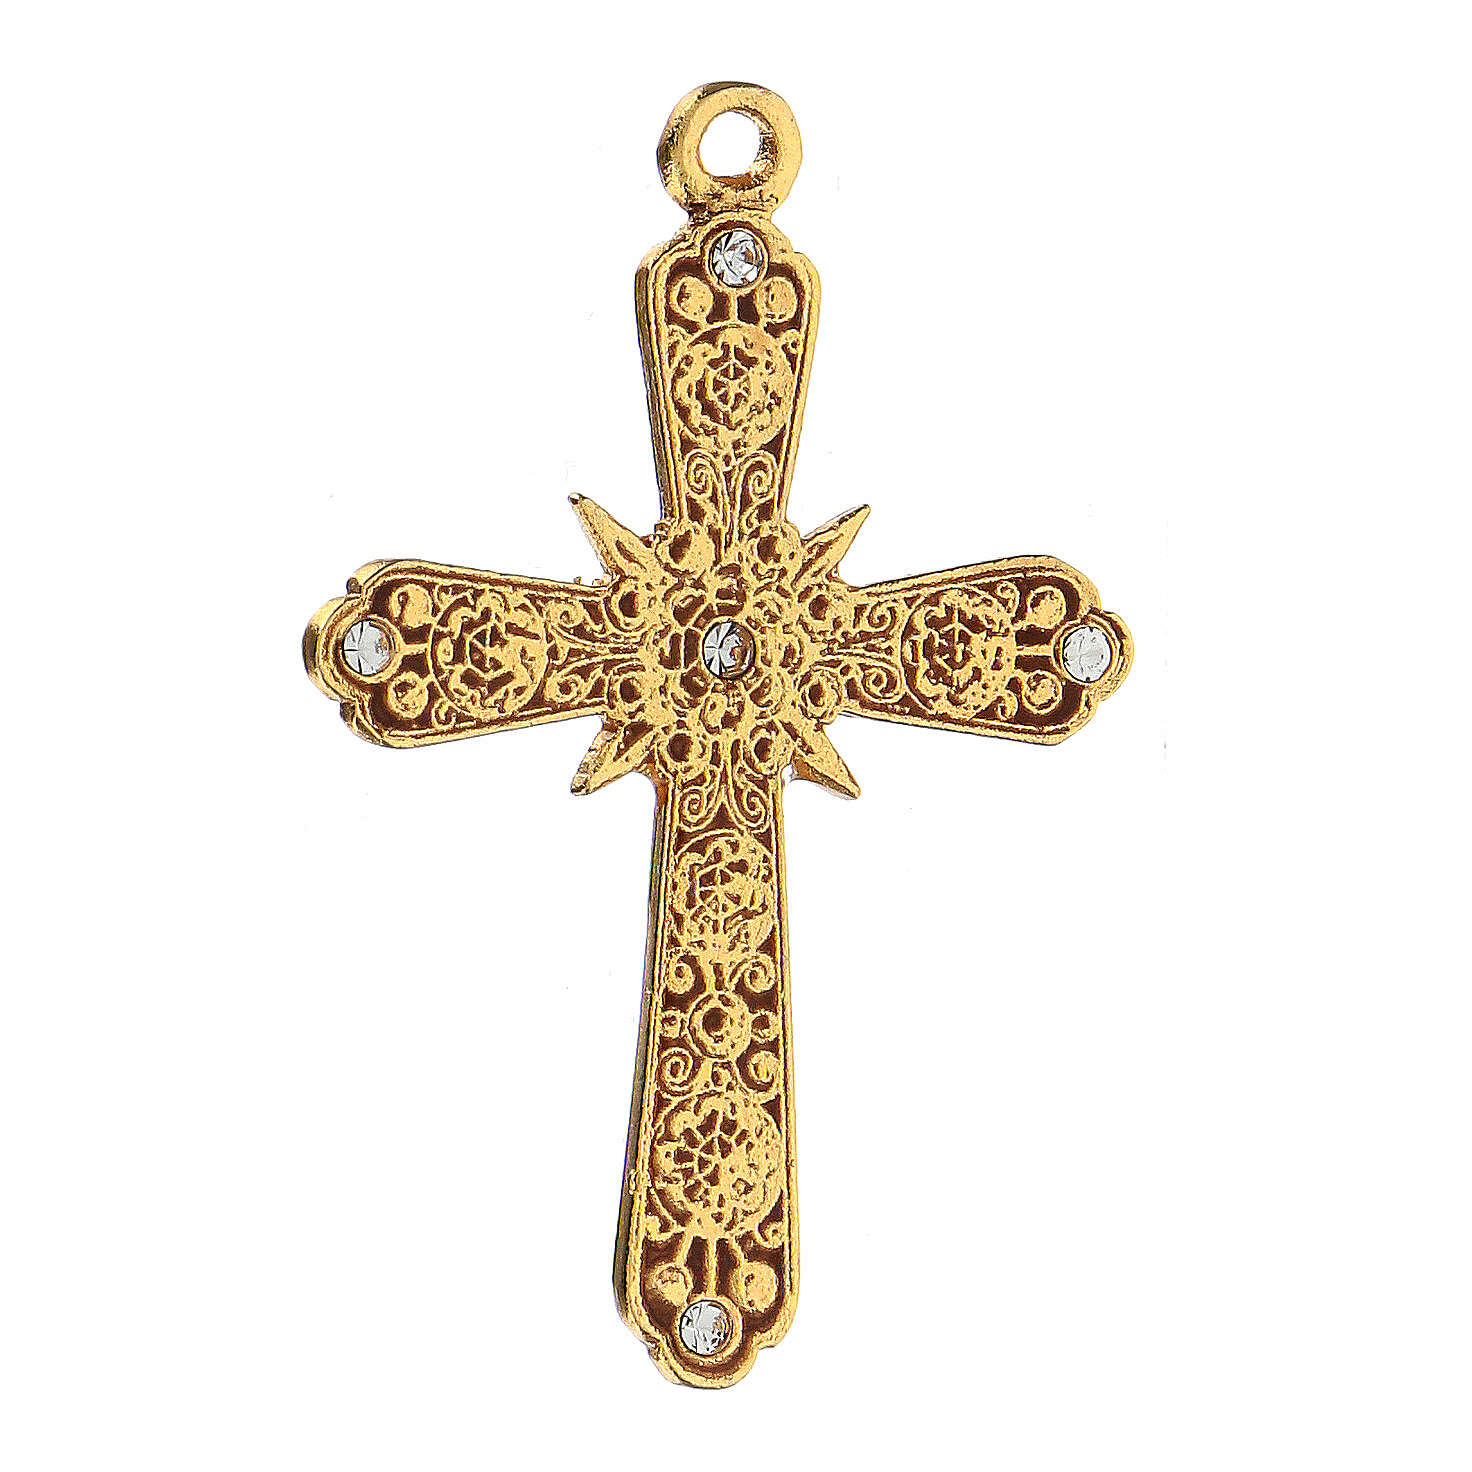 Golden cross pendant with Swarovski rhinestones 4